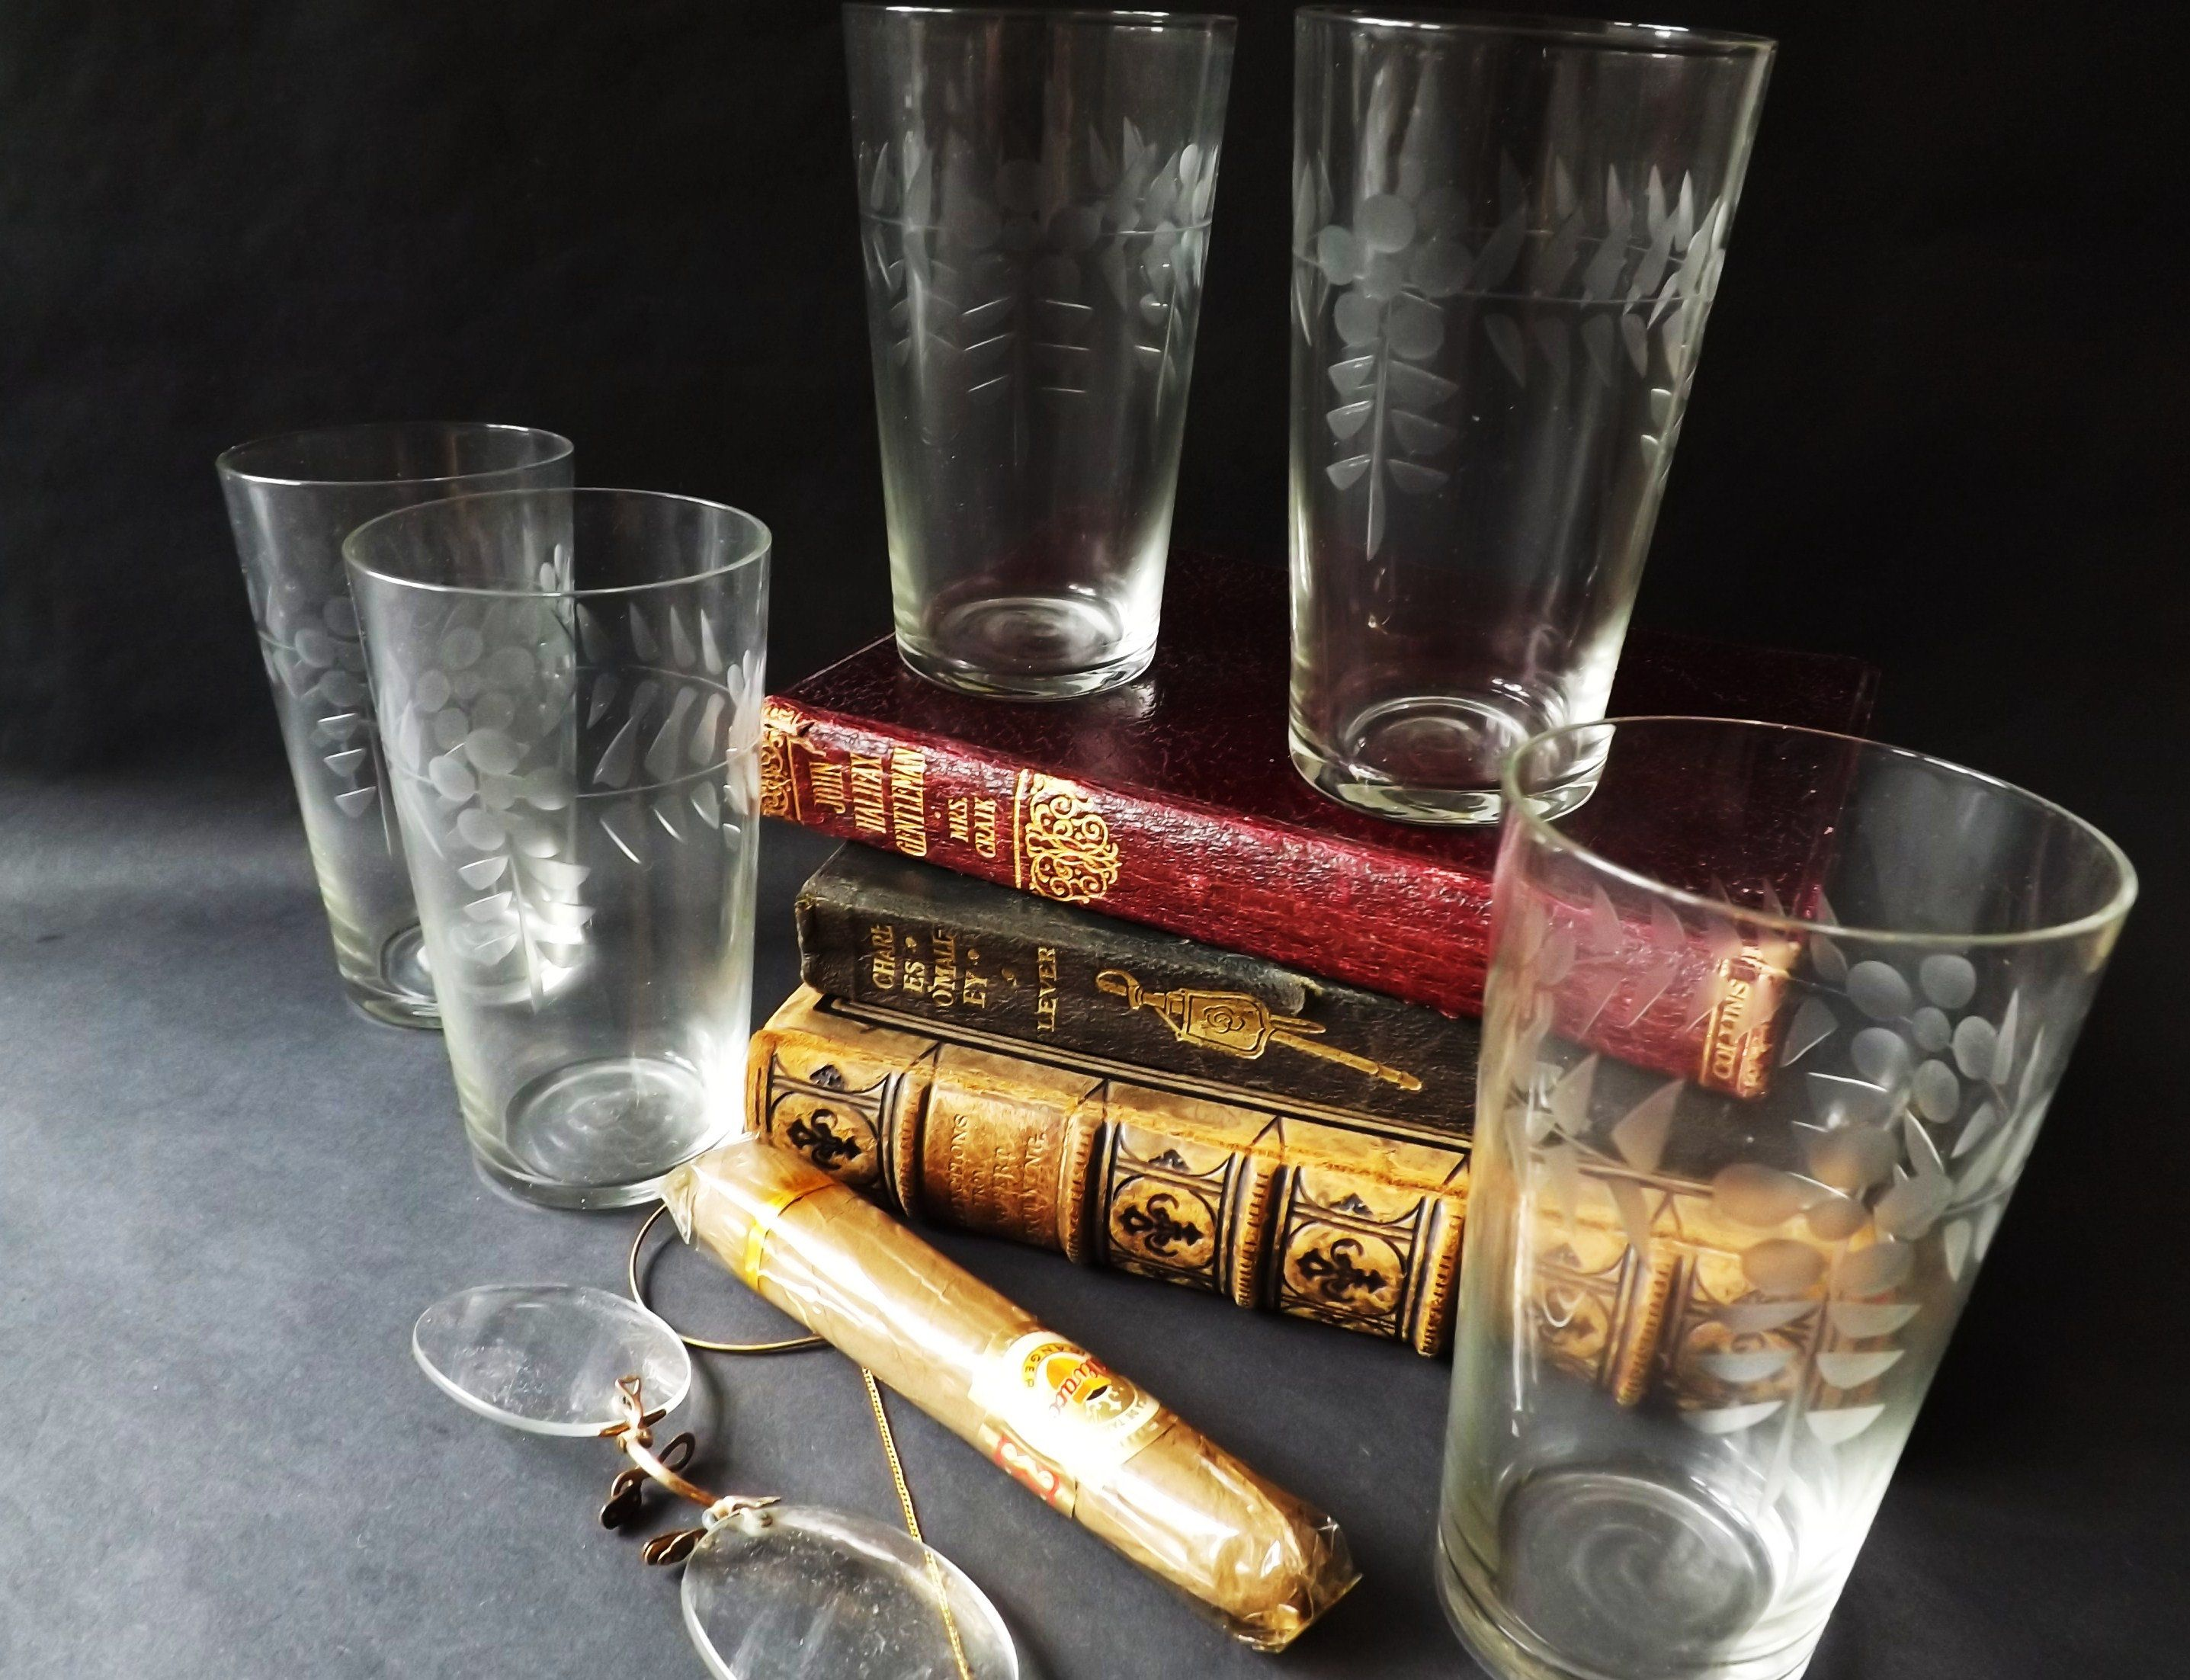 5 Antique Etched Tumblers Set Whisky Glasses Engraved Water Glass Vintage Barware Man Cave Home Bar Edwardian Whiskey Drinking Glassware Glassware Drinking Vintage Barware Whisky